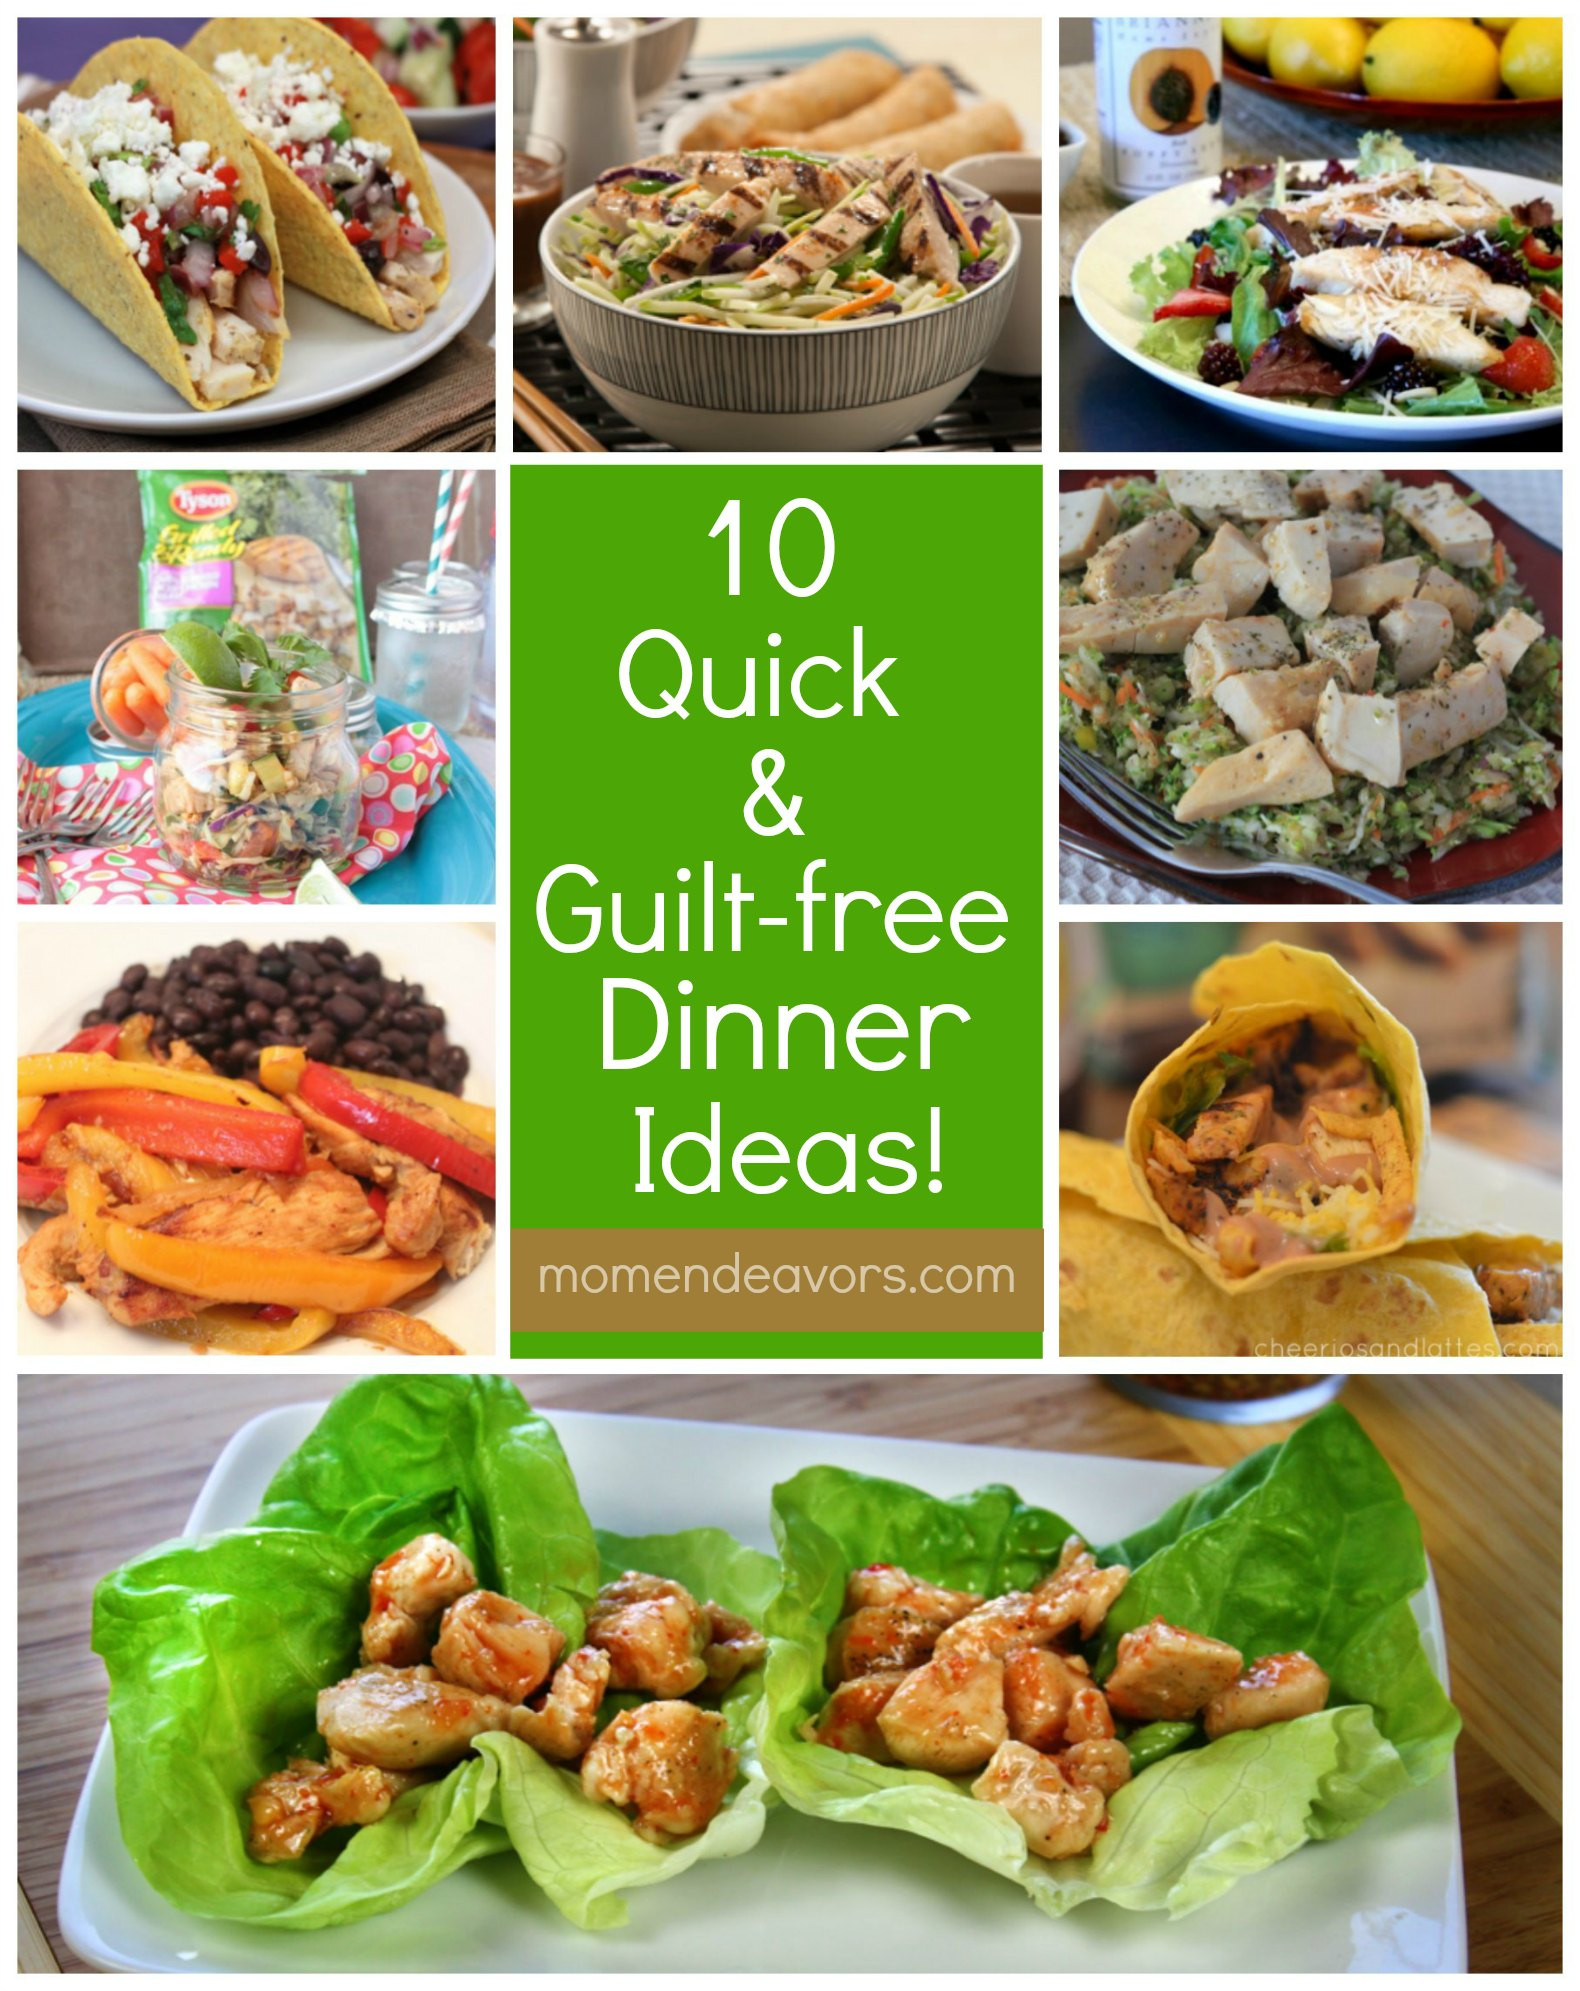 Easy Healthy Dinner Ideas  10 Quick & Guilt Free Dinner Ideas with Tyson Grilled